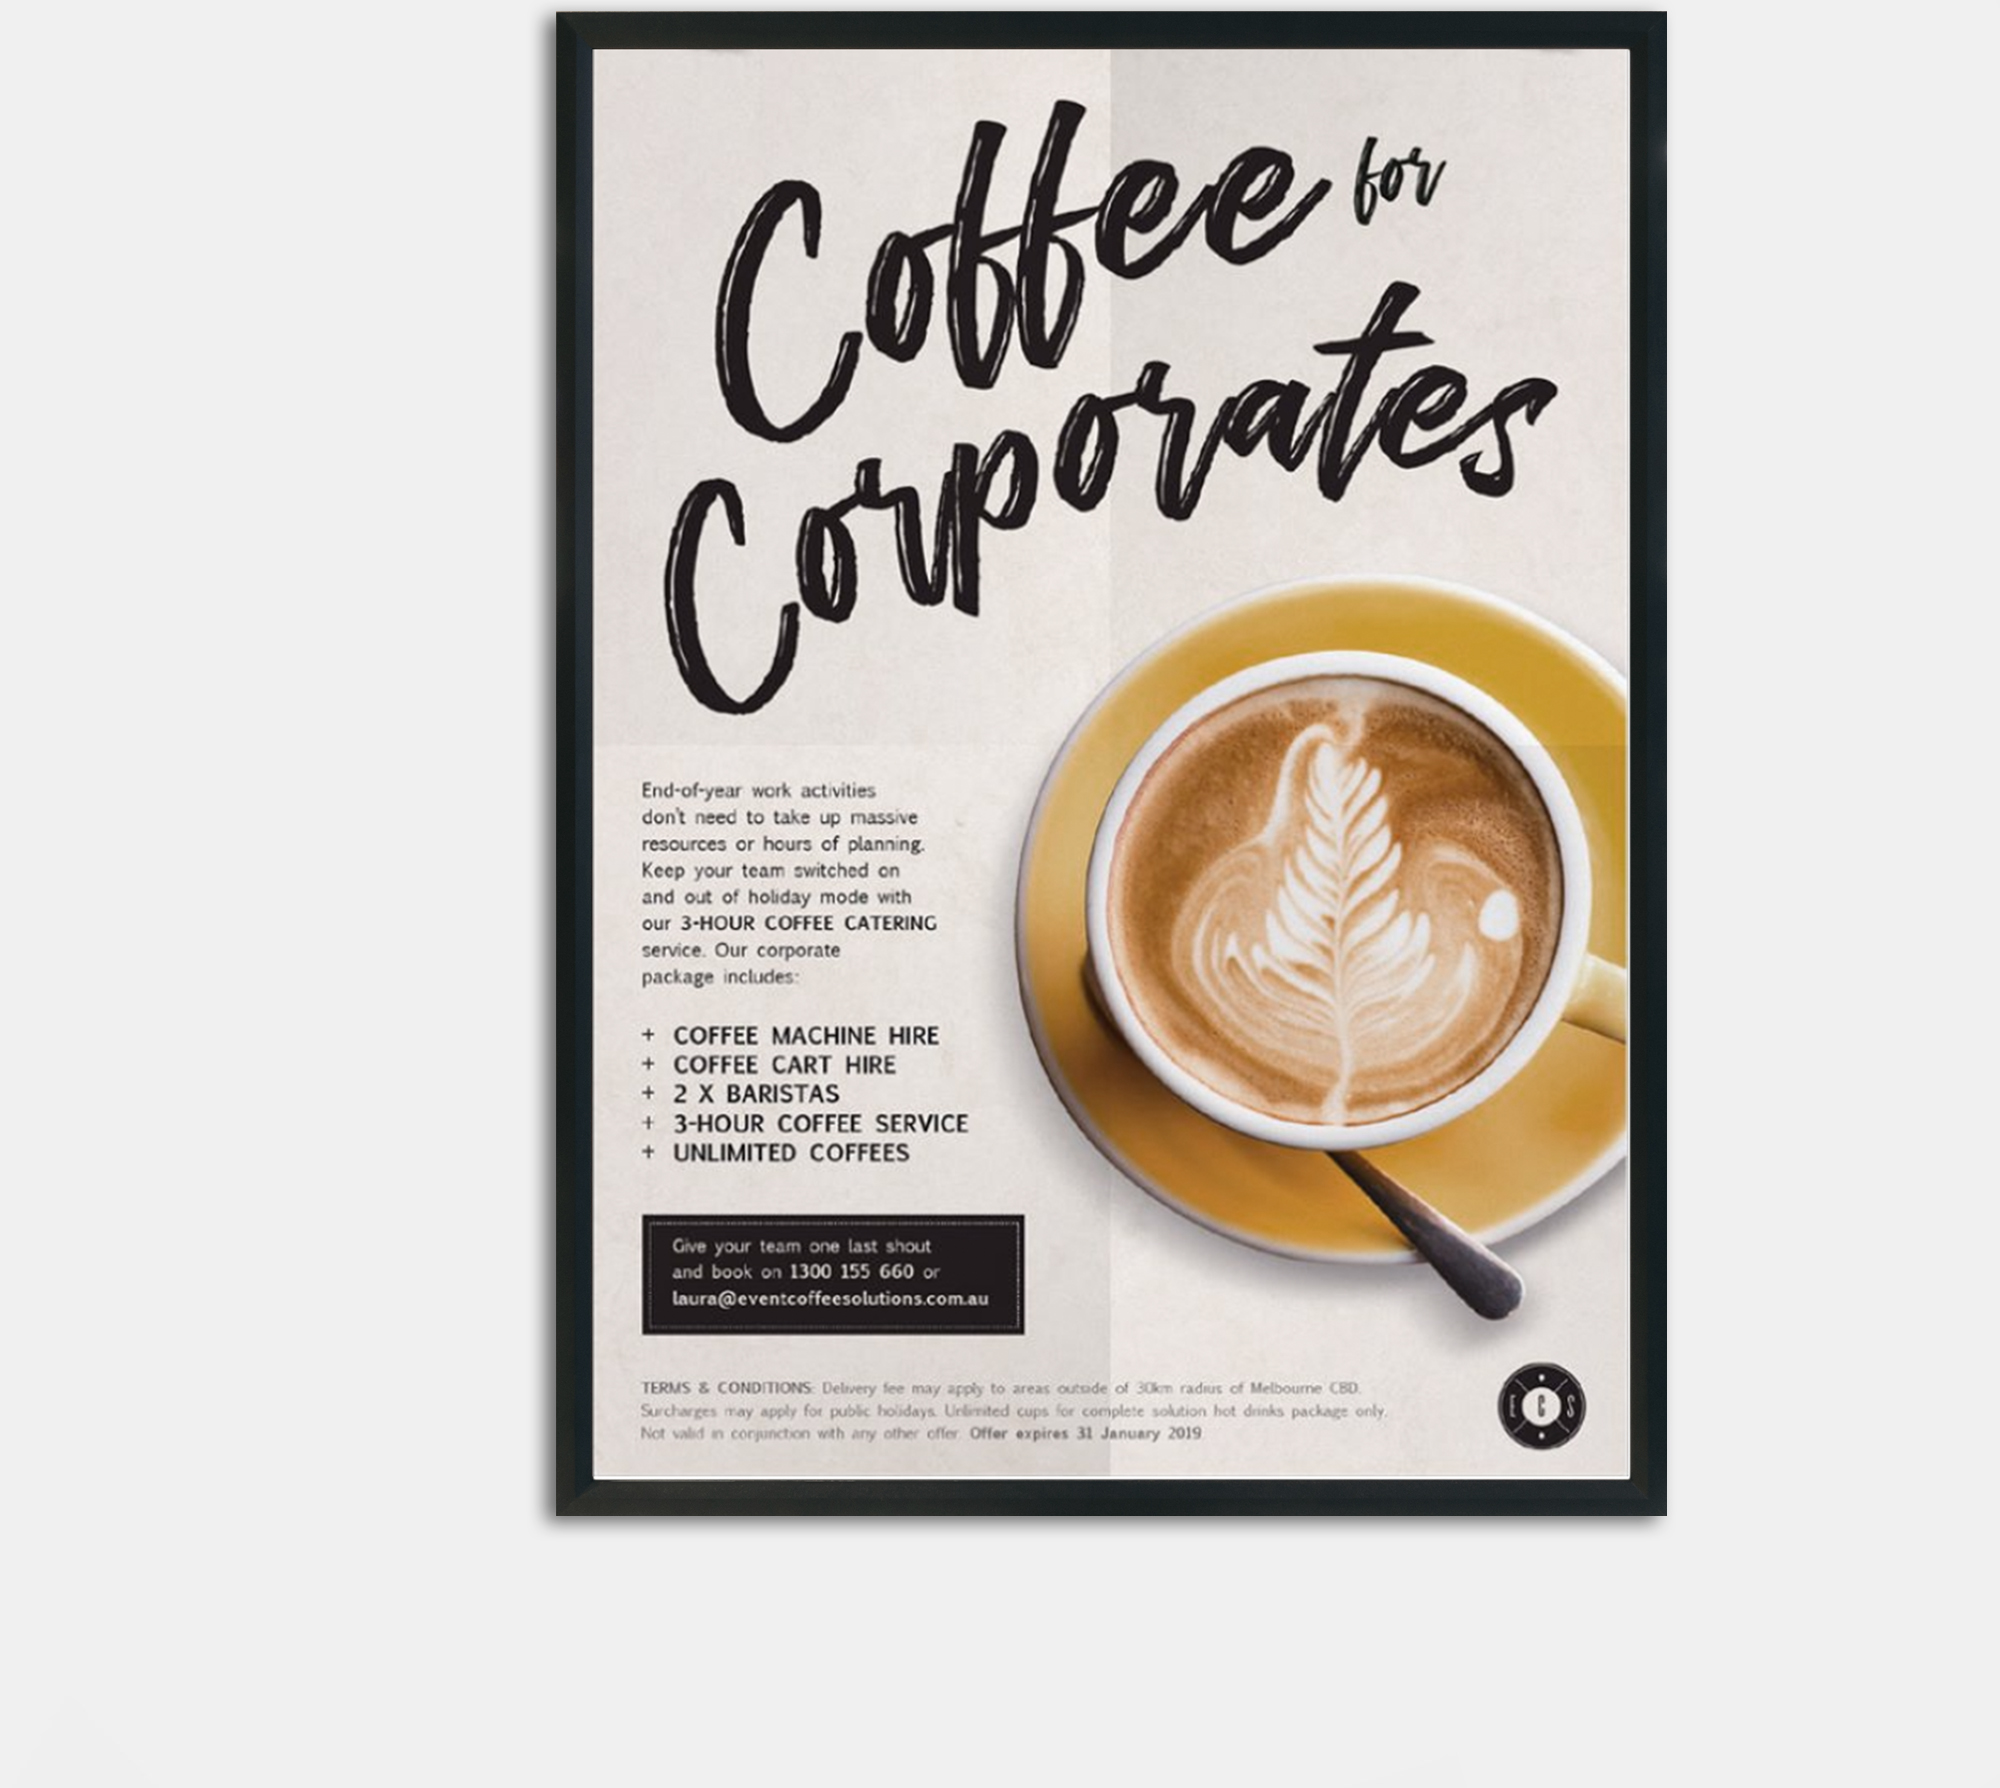 Coffee-for-corporates-menu-package